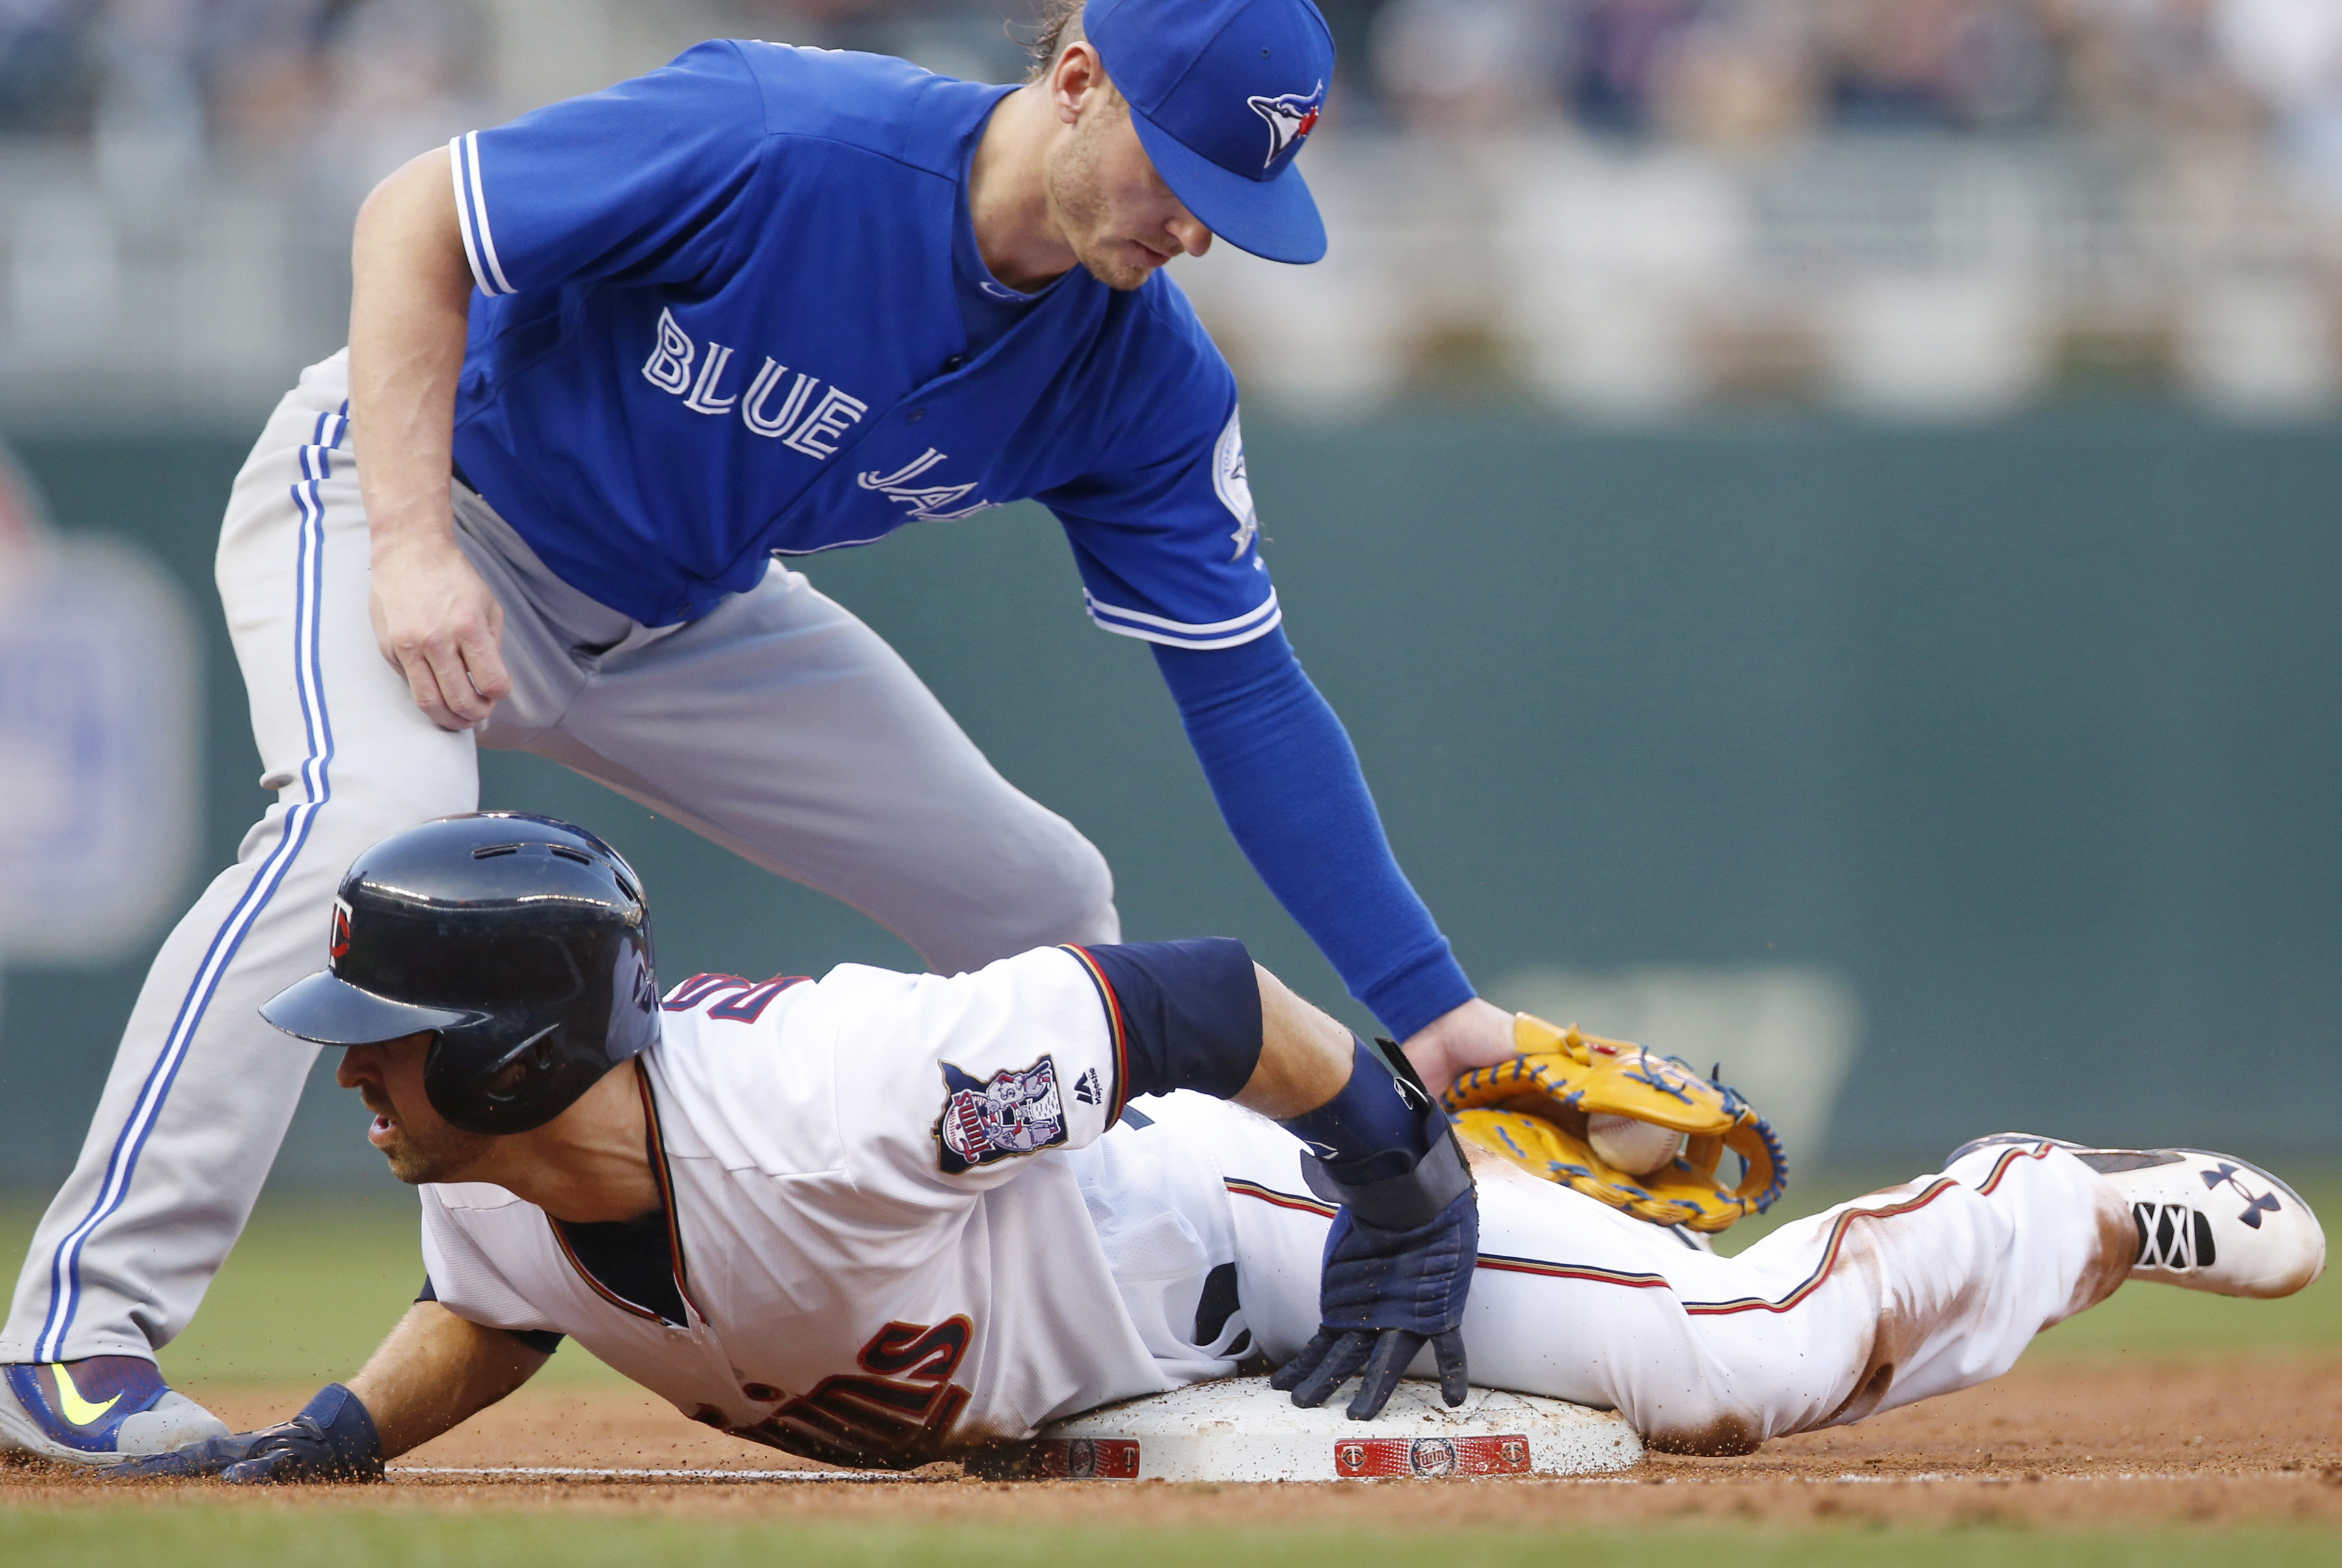 Minnesota Twins' Brian Dozier, bottom, beats the tag by Toronto Blue Jays' Josh Donaldson to advance to third after an error by second baseman Jimmy Paredes during the first inning of a baseball game Thursday, May 19, 2016, in Minneapolis. (AP Photo/Jim M